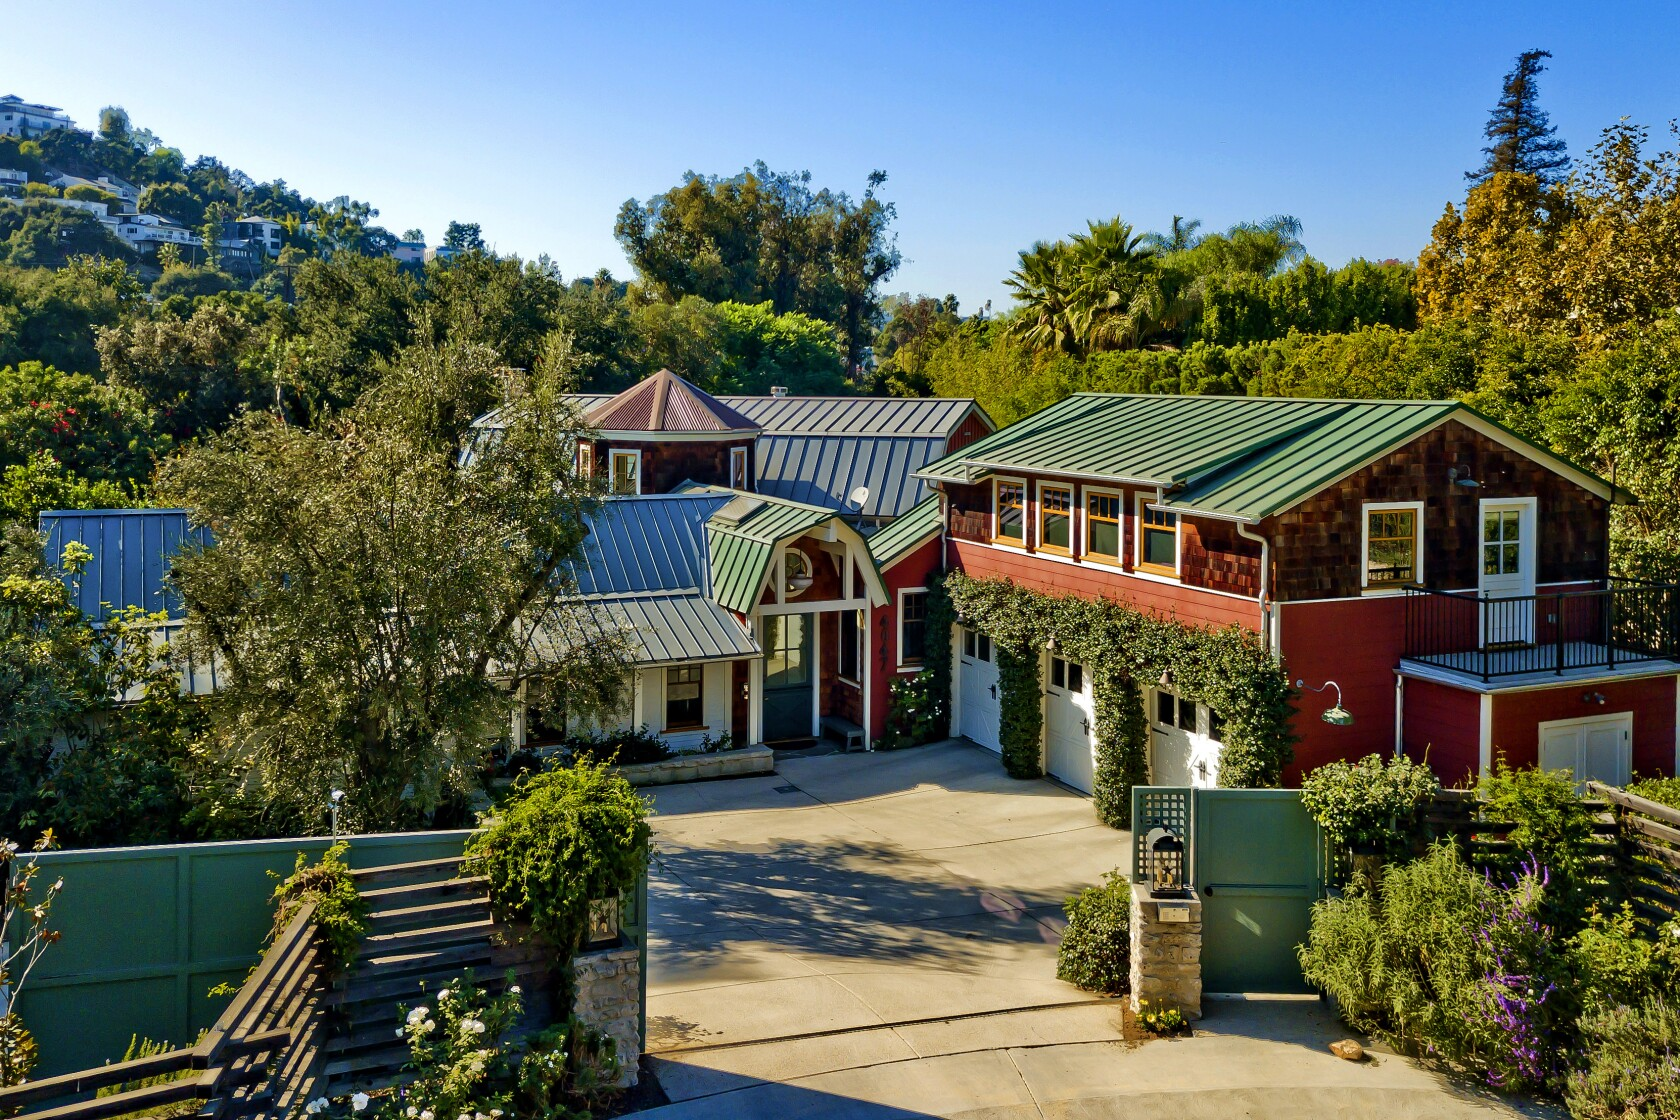 Home of the Week: A little bit country in Studio City